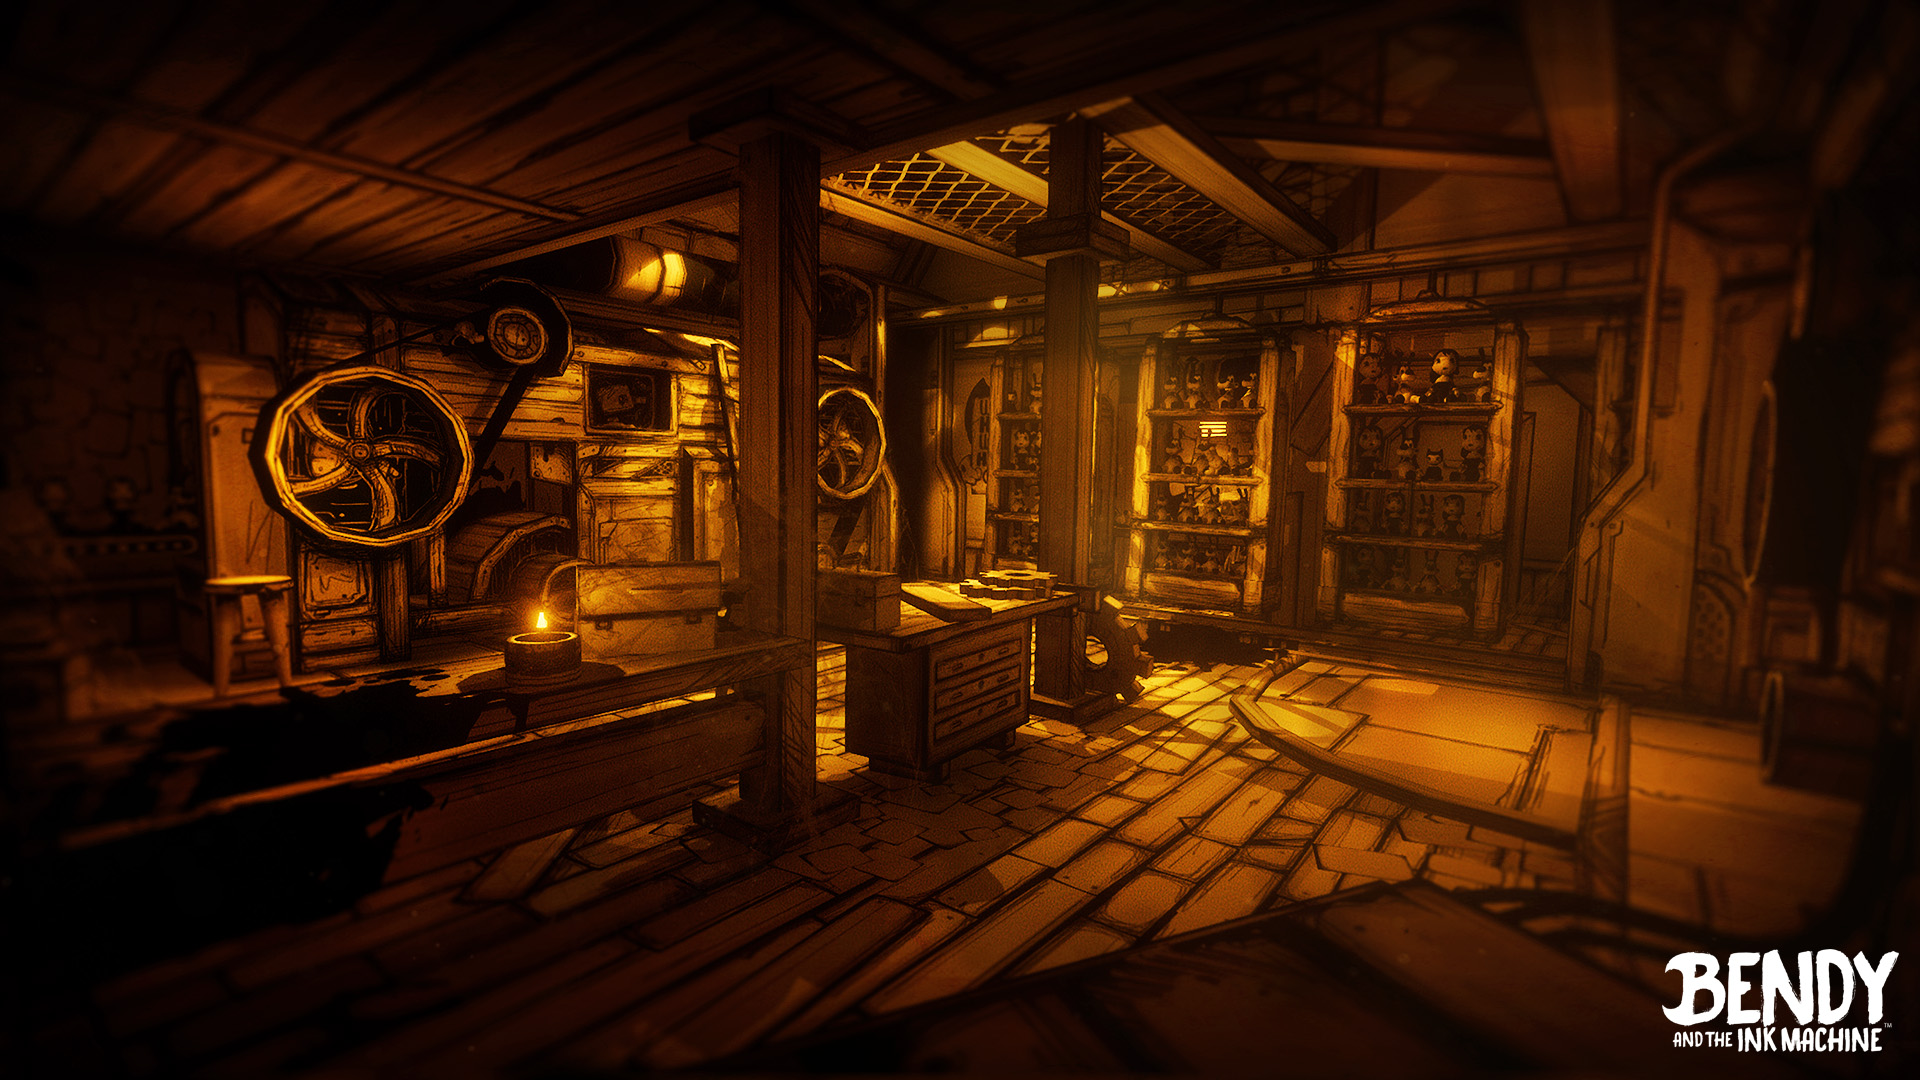 Bendy and the Ink Machine is coming to Xbox One this fall ...